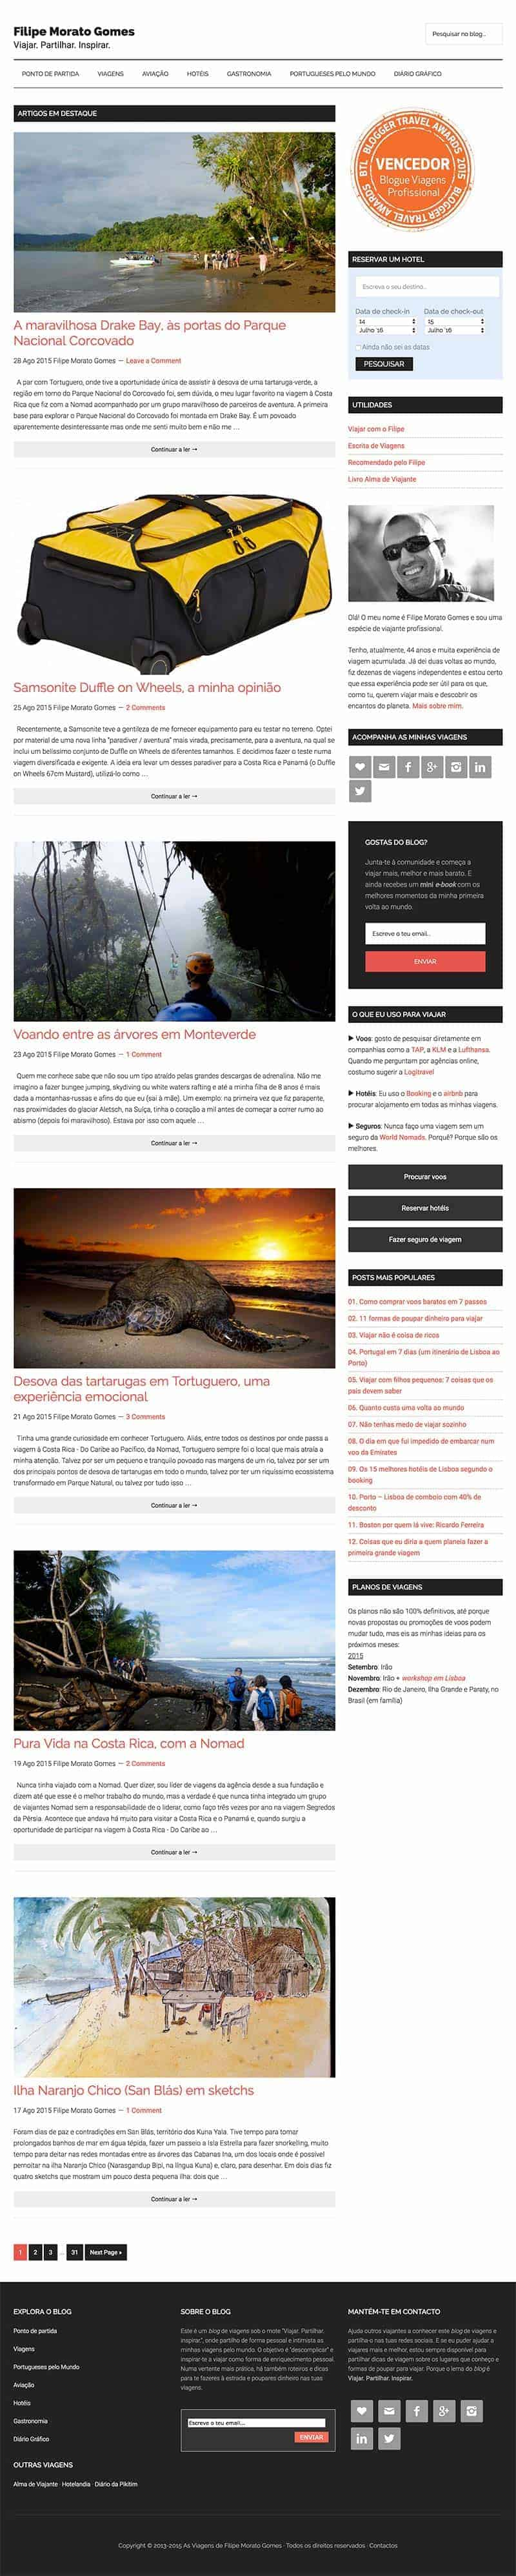 Homepage do blog As Viagens de Filipe Morato Gomes